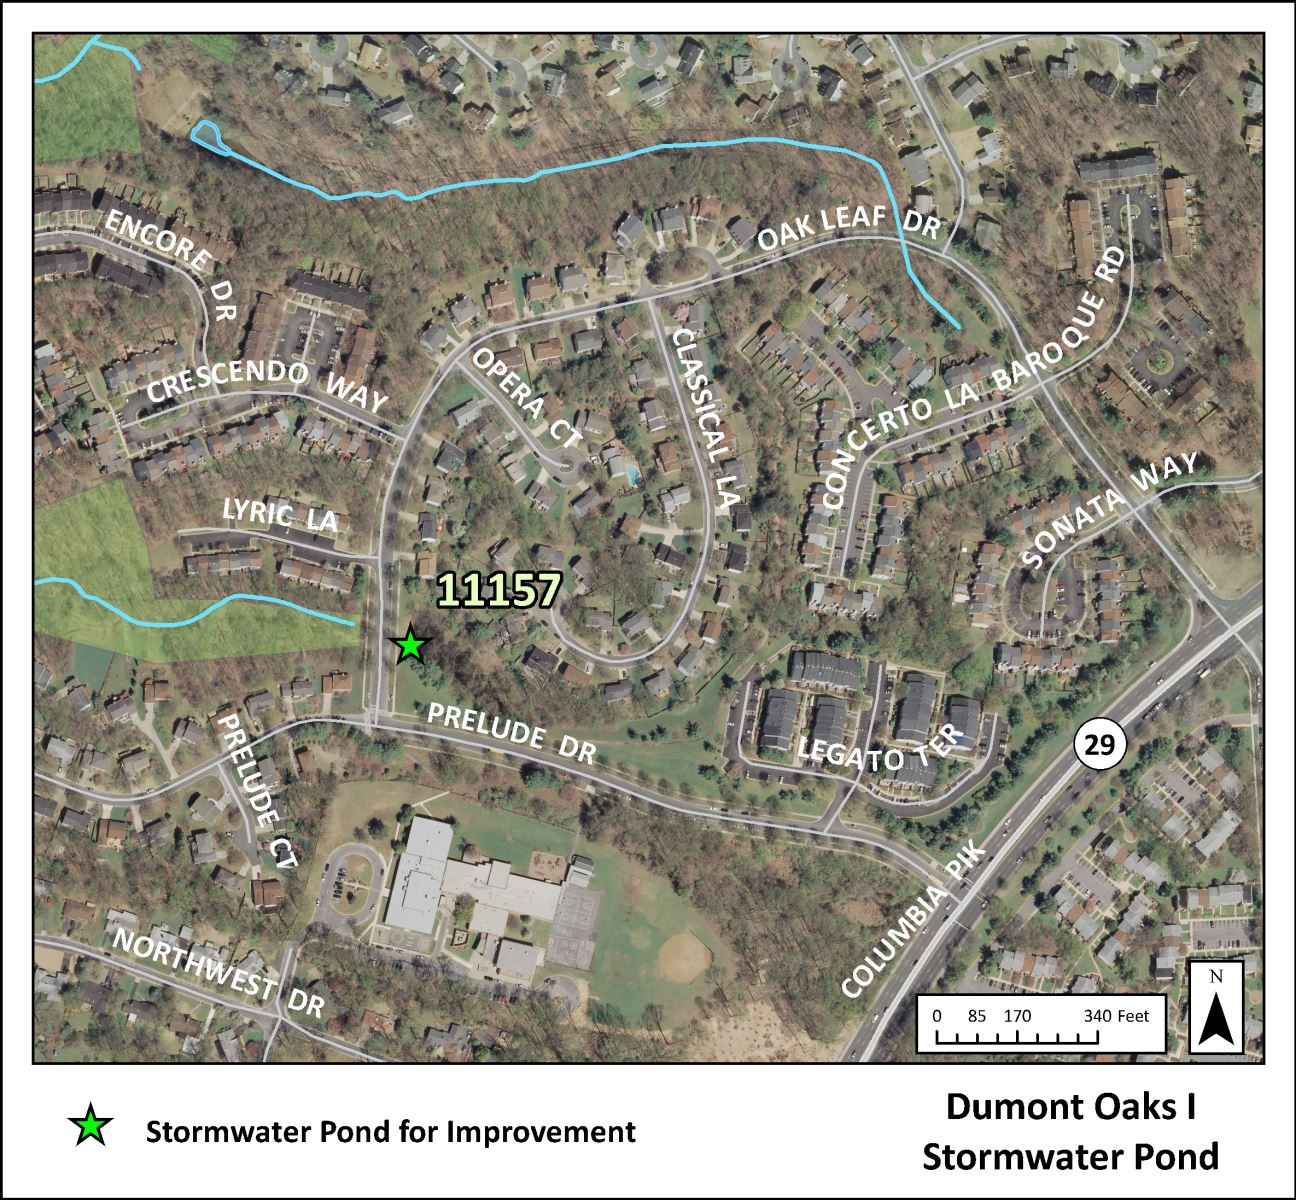 Image of Dumont Oaks I